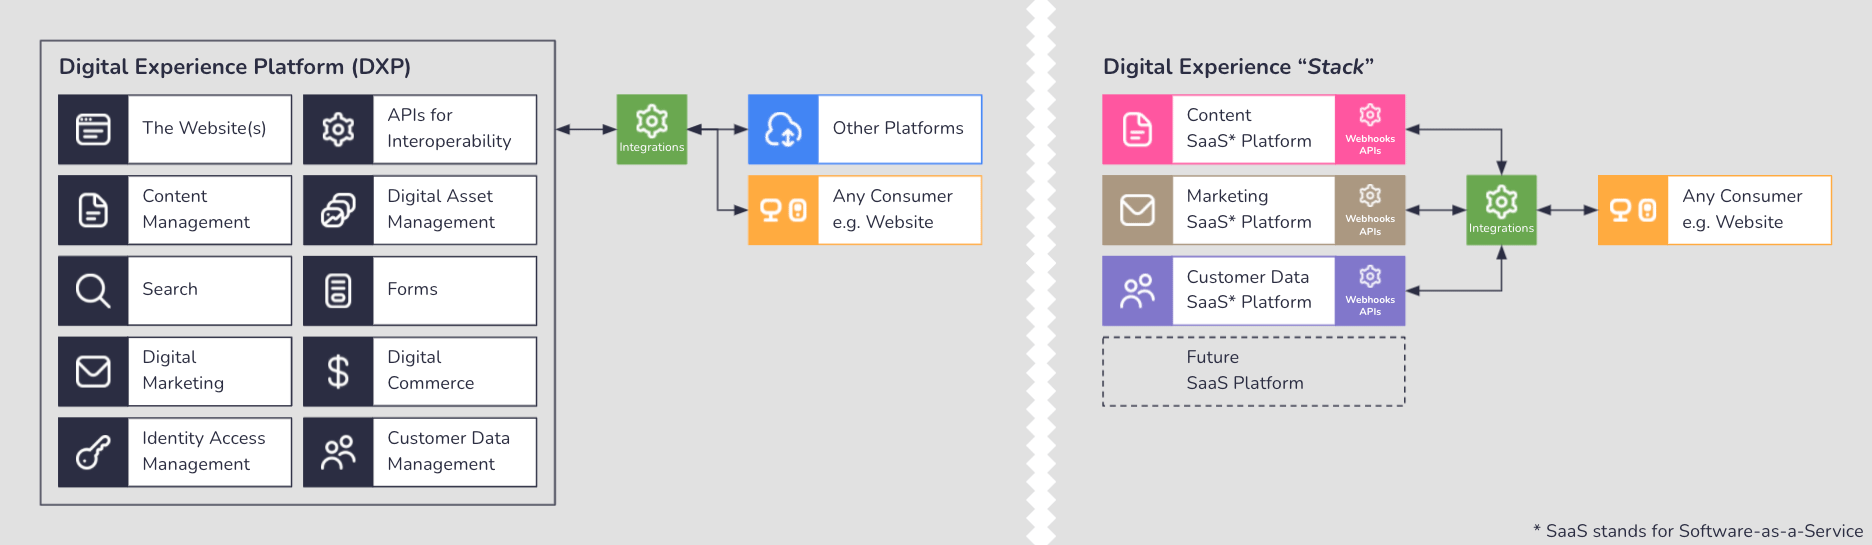 On the left is a diagram showing what is included in a DXP. On the right is a diagram showing the Digital Experience Stack.